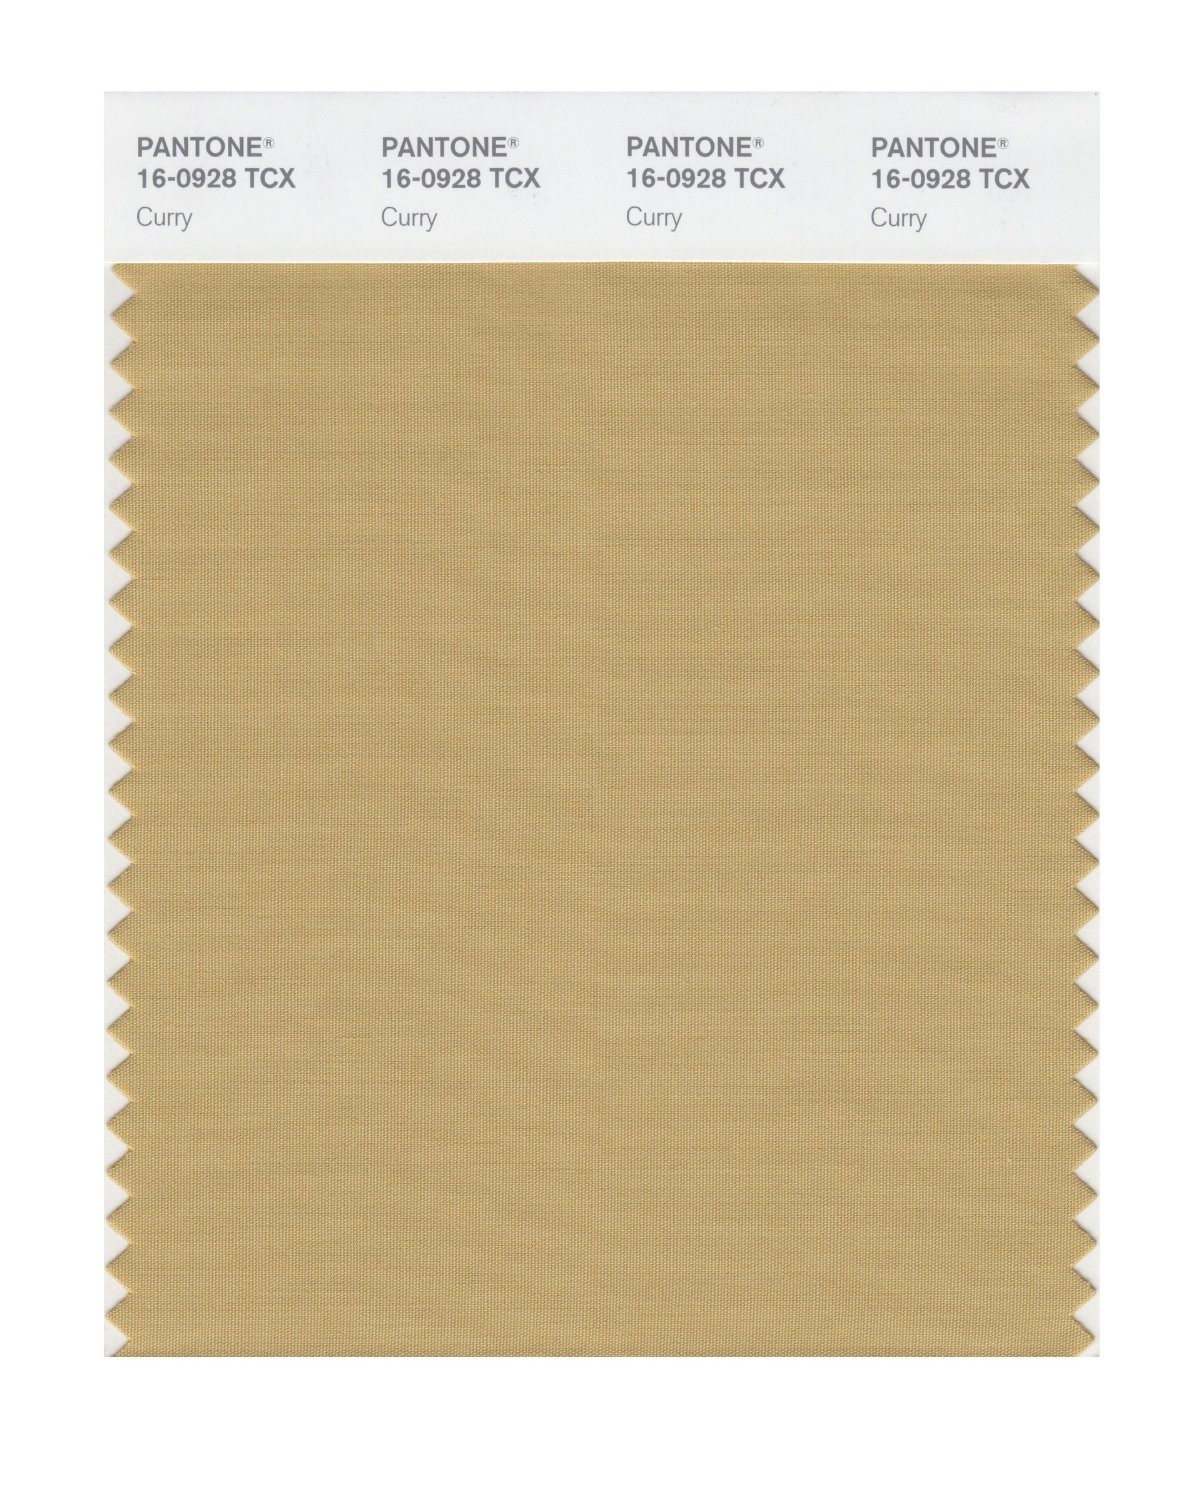 Pantone 16-0928 TCX Swatch Card Curry